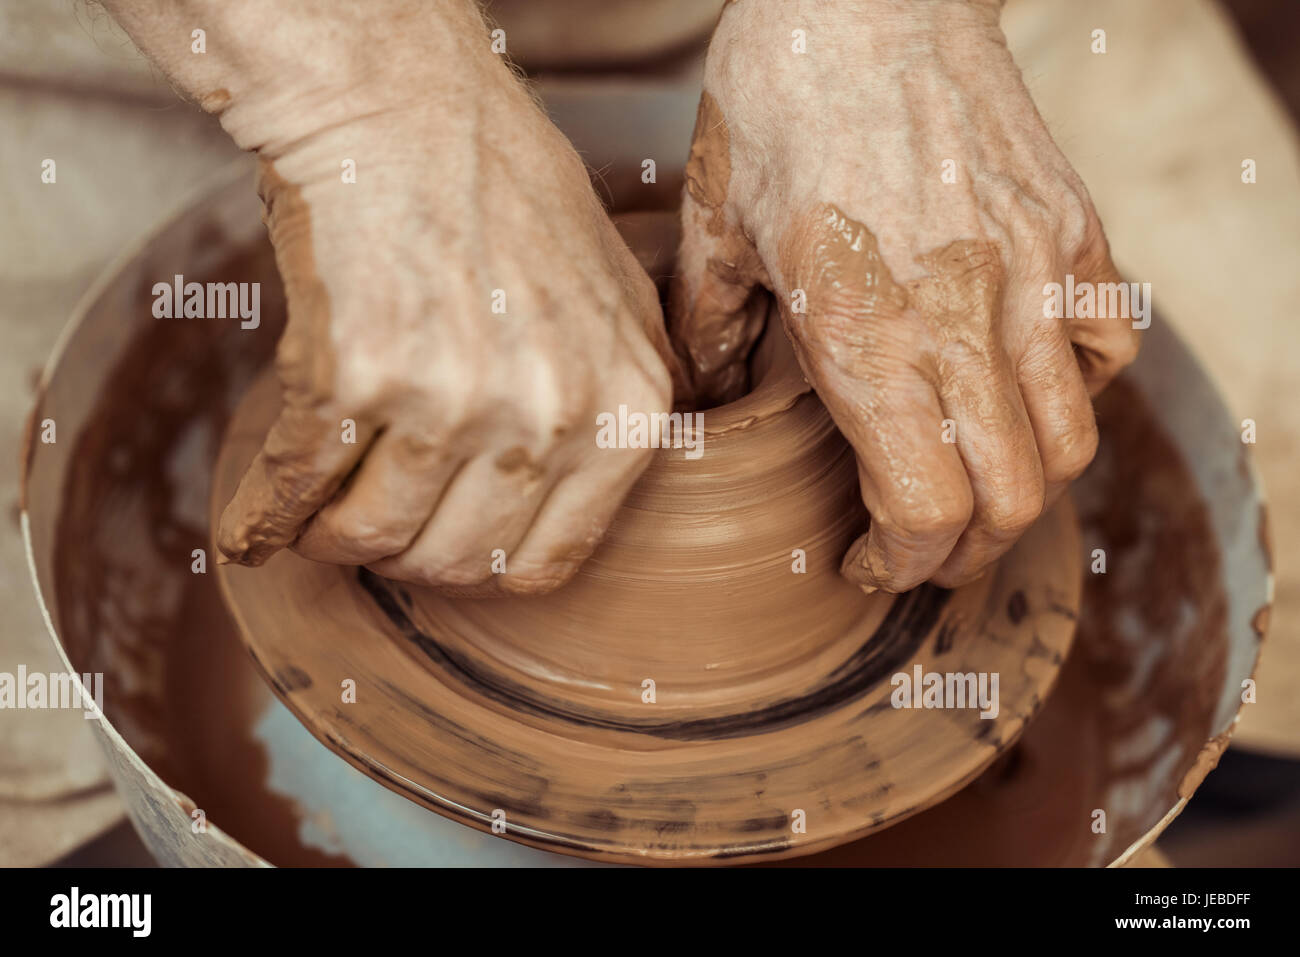 Close up of male craftsman working on potters wheel - Stock Image